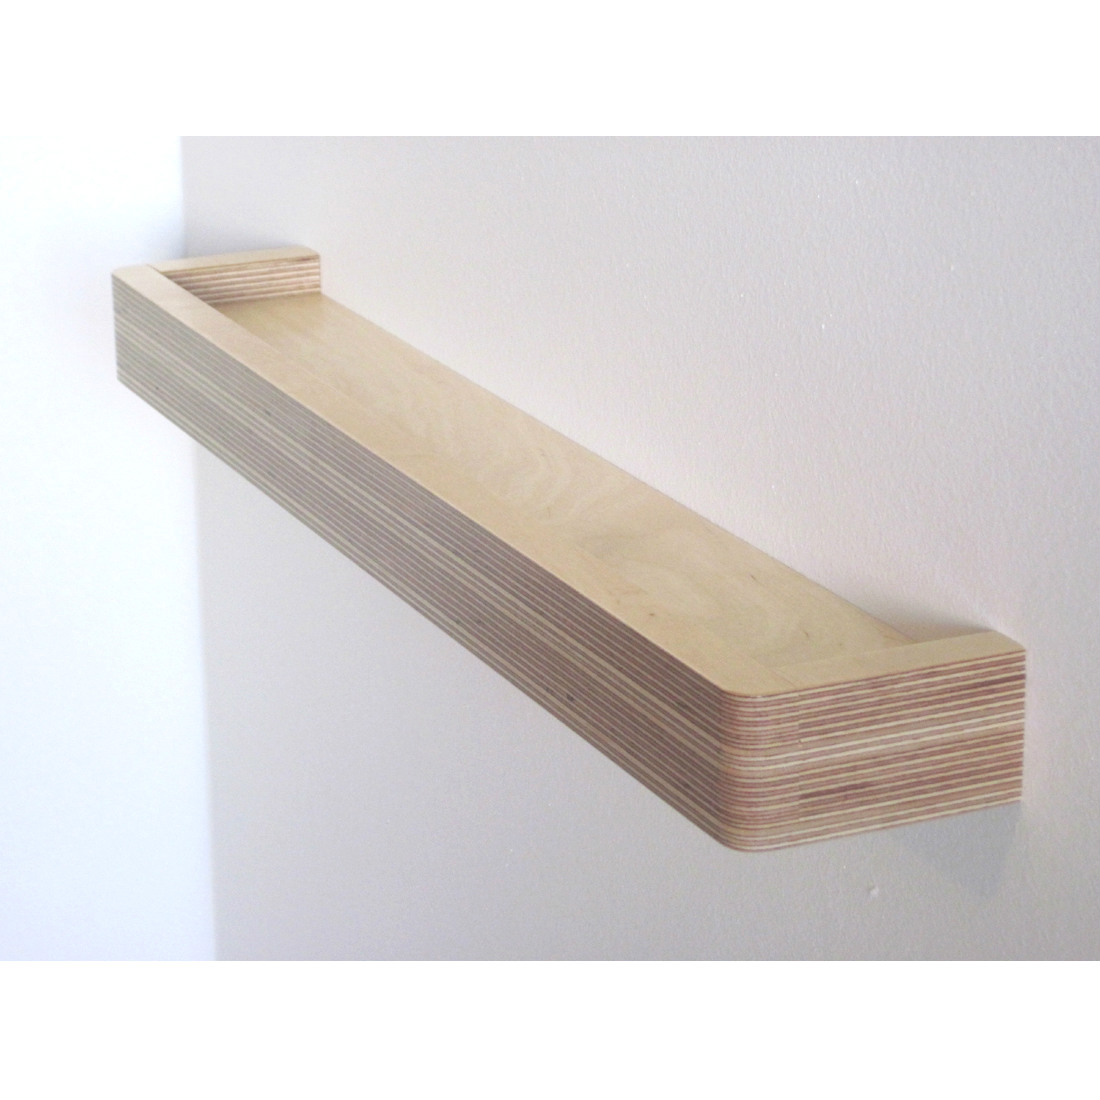 Picture Ledge Floating Shelf from brightblueliving.com